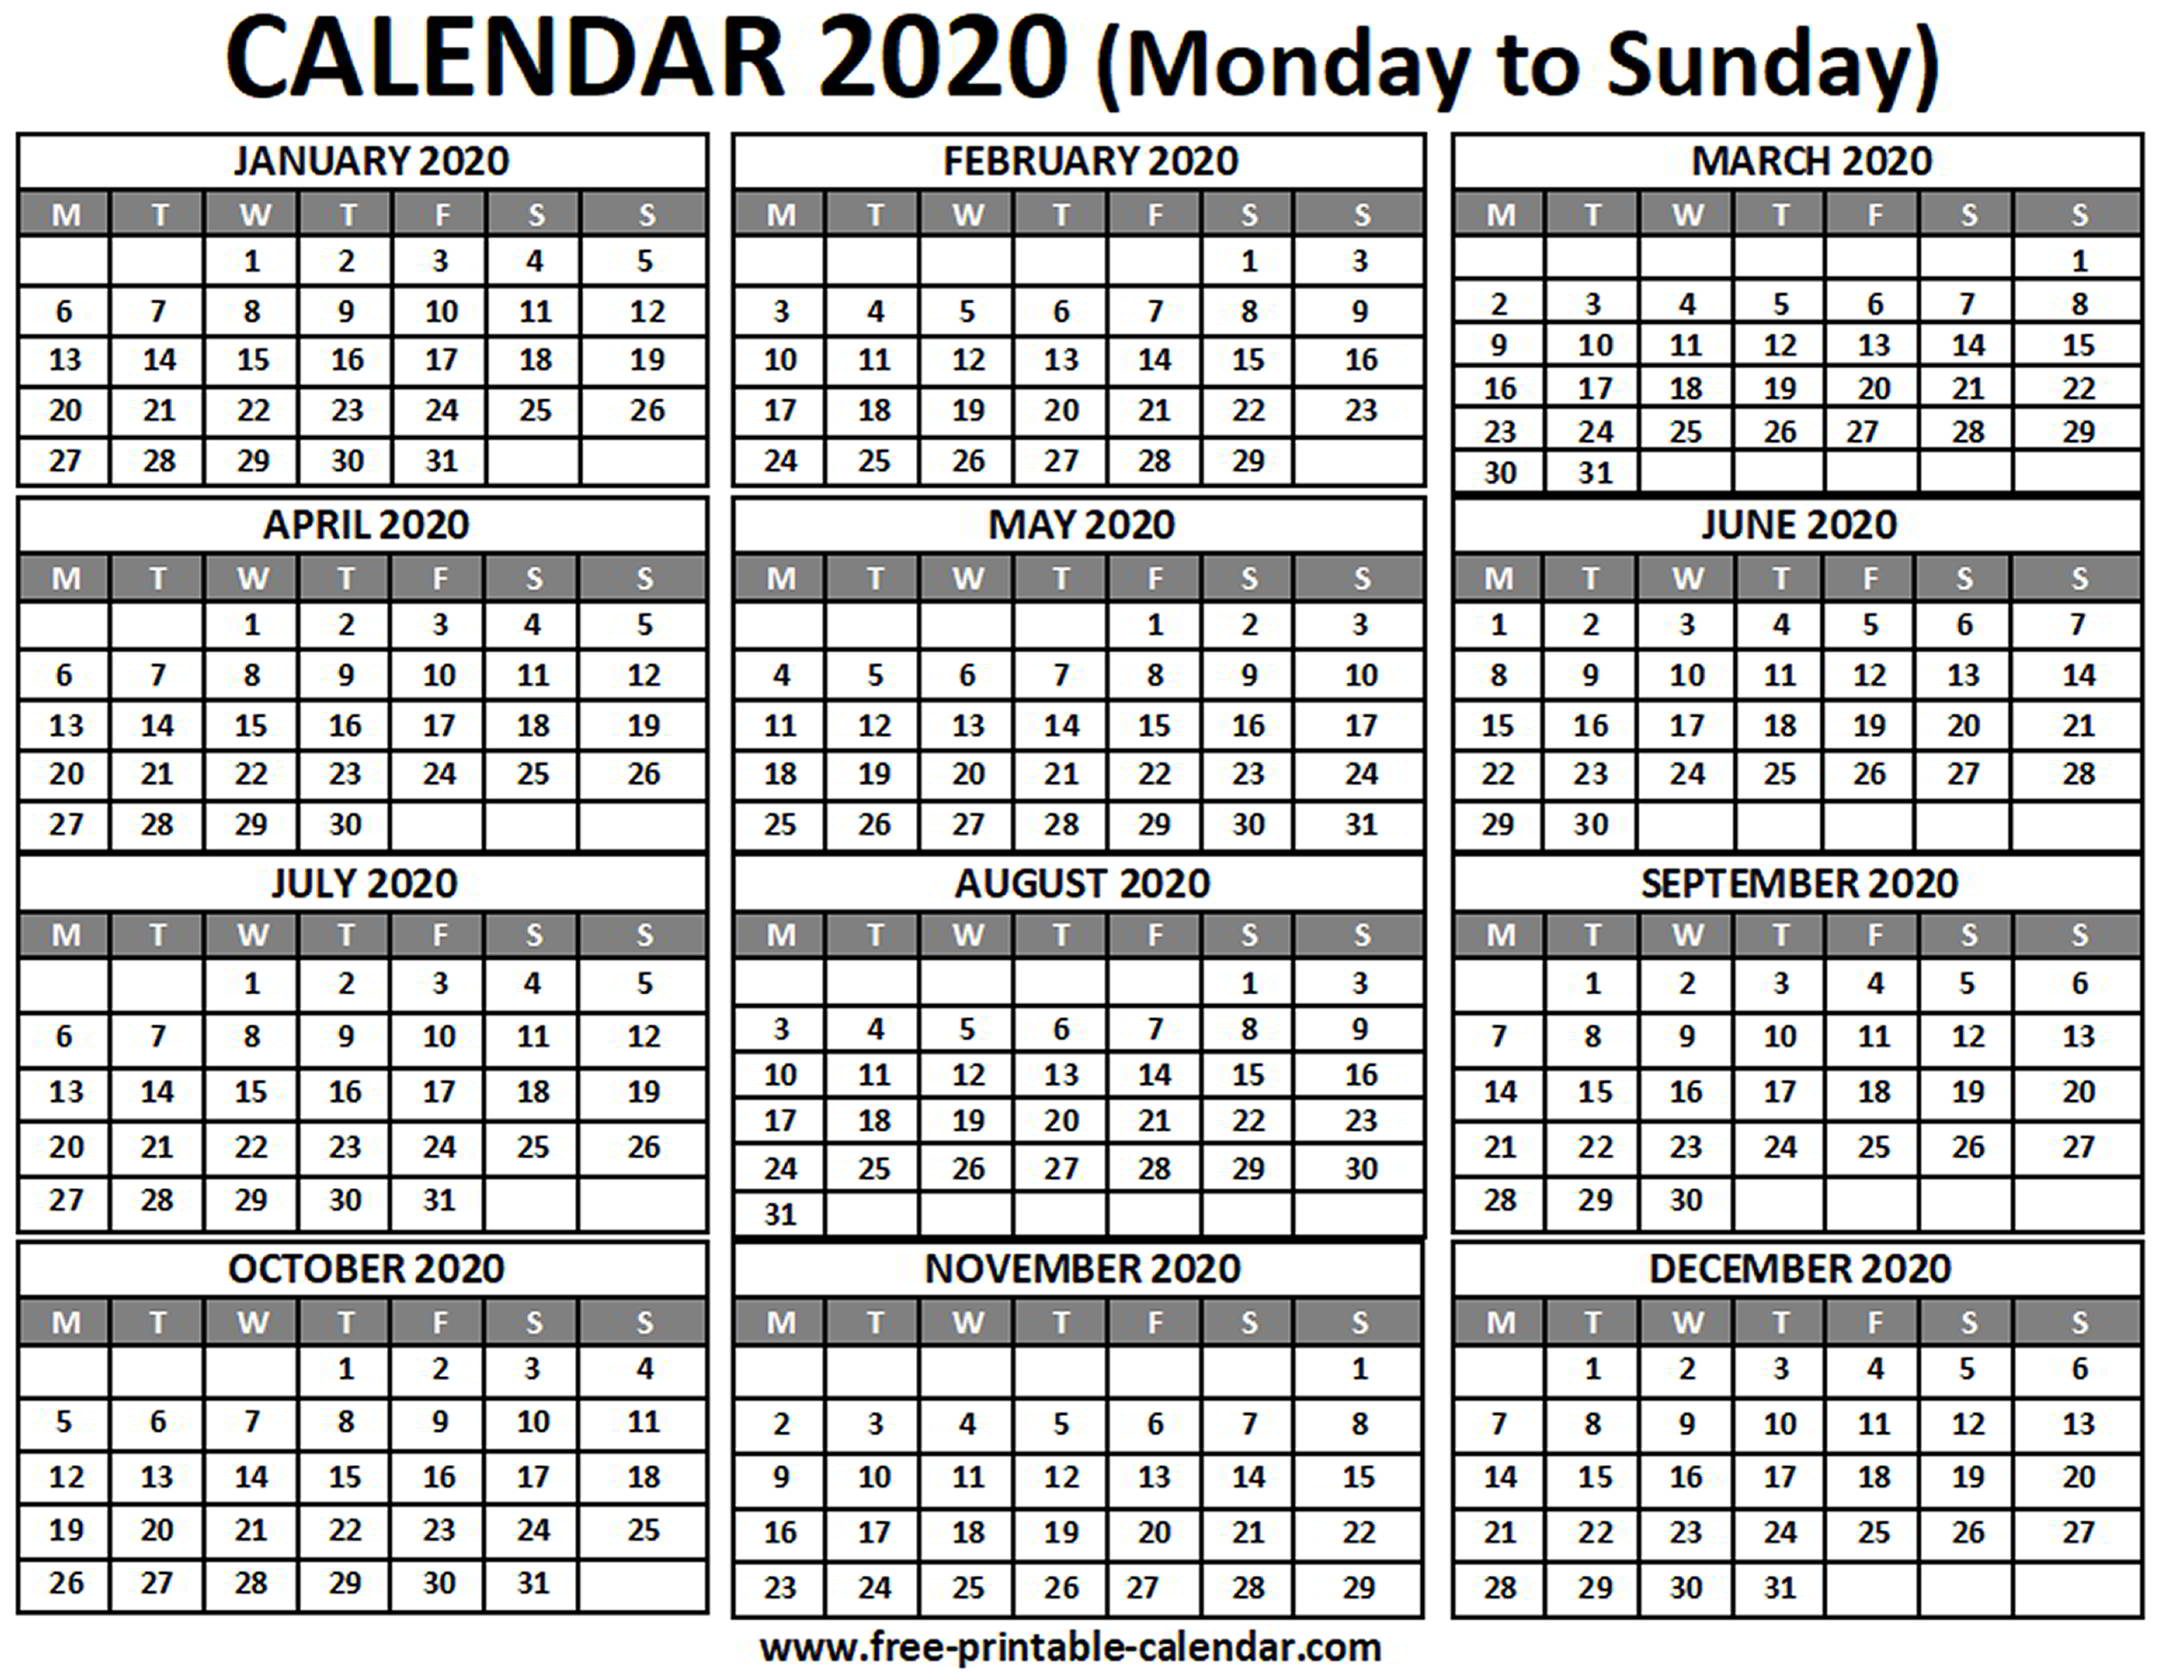 2020 Calendar - Free-Printable-Calendar throughout Free 2020 Printable Pocket Calendar